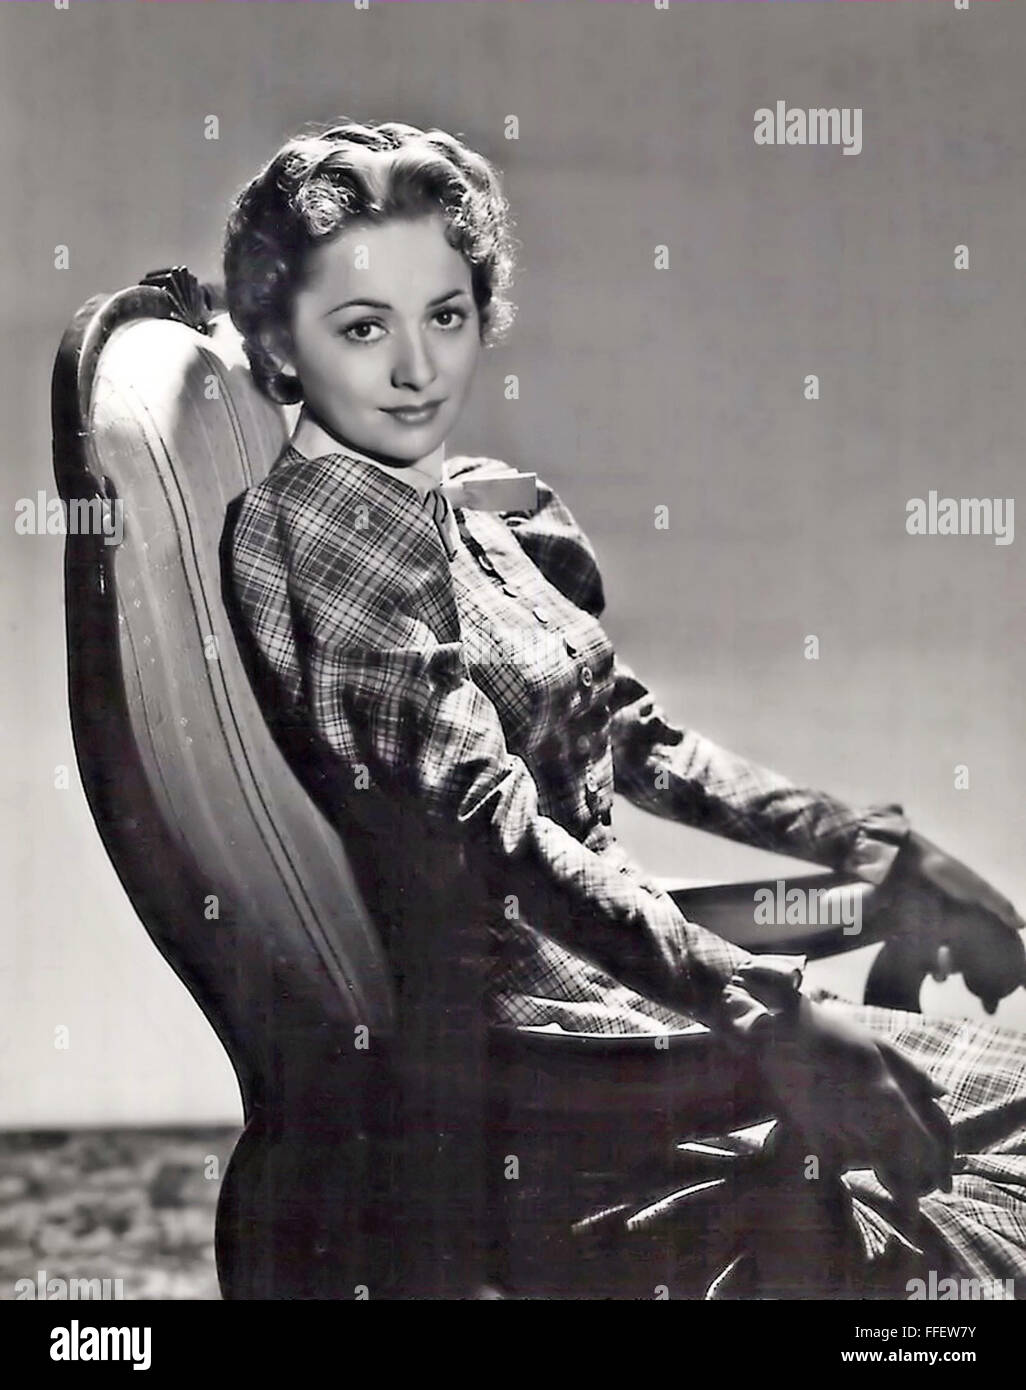 OLIVIA de HAVILLAND Anglo-American film actress in character for the 1938 film Dodge City - Stock Image